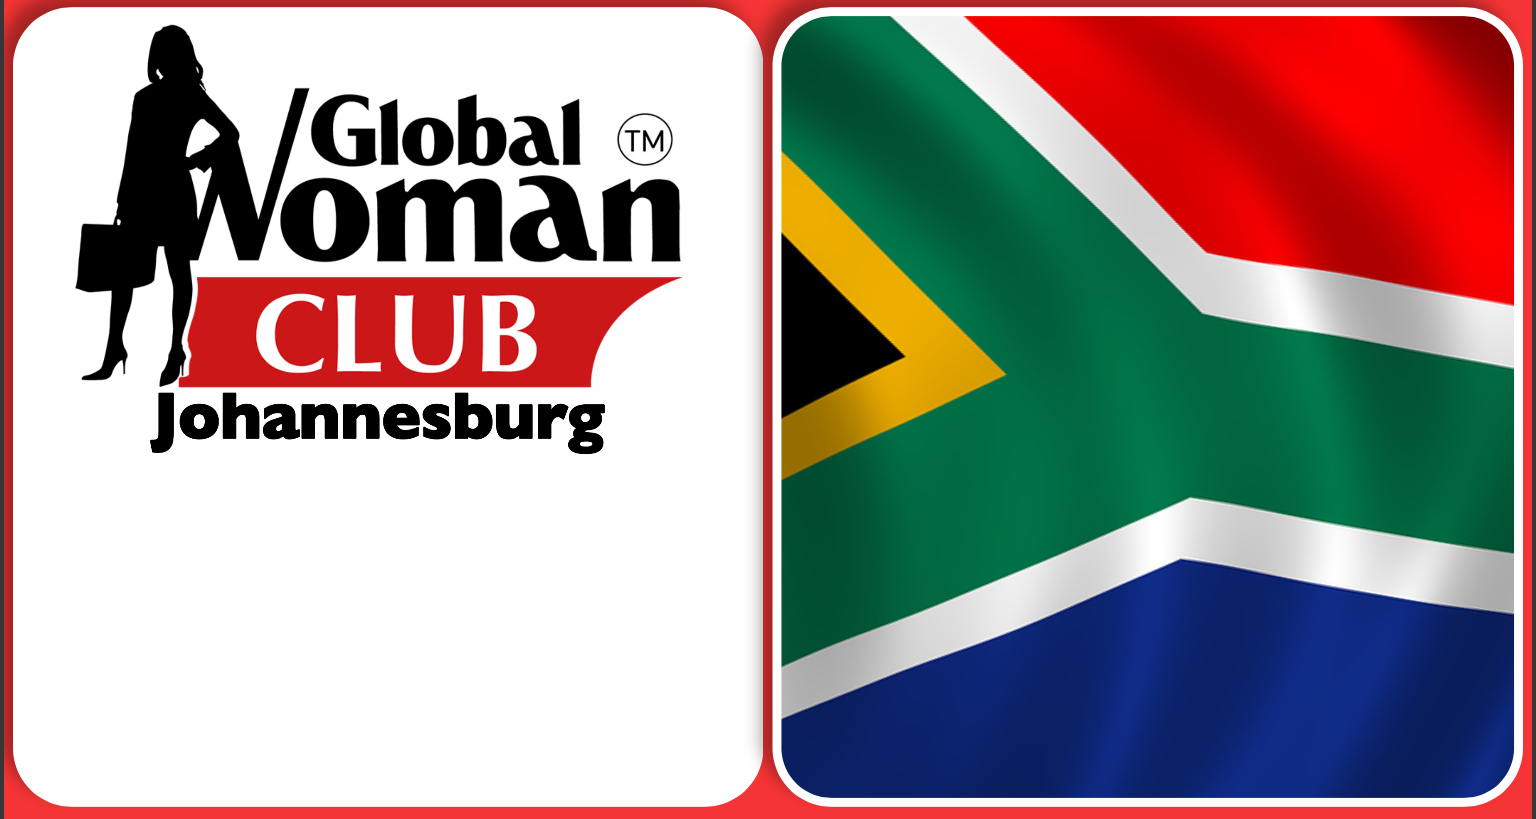 GLOBAL WOMAN CLUB JOHANNESBURG: BUSINESS NETWORKING MEETING - OCTOBER